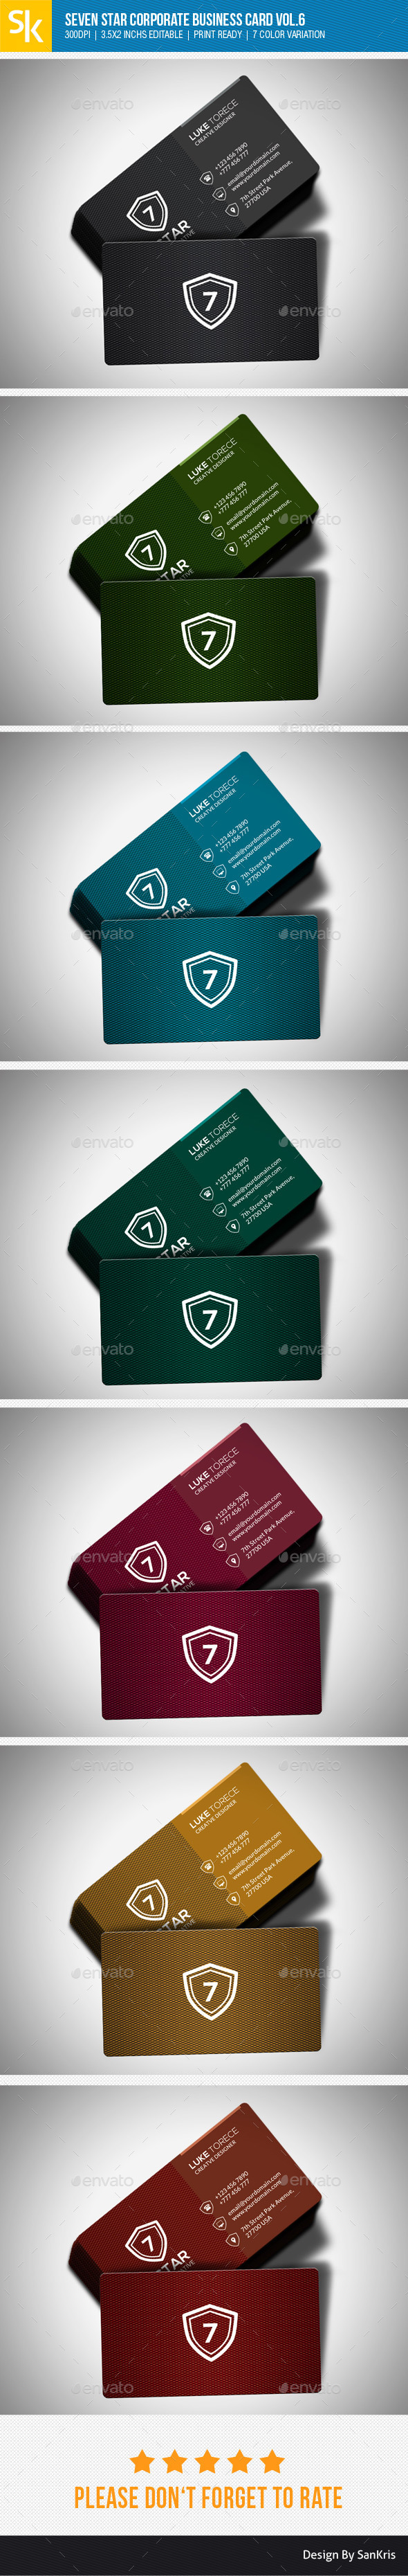 GraphicRiver Seven Star Corporate Business Card Vol.6 10913323